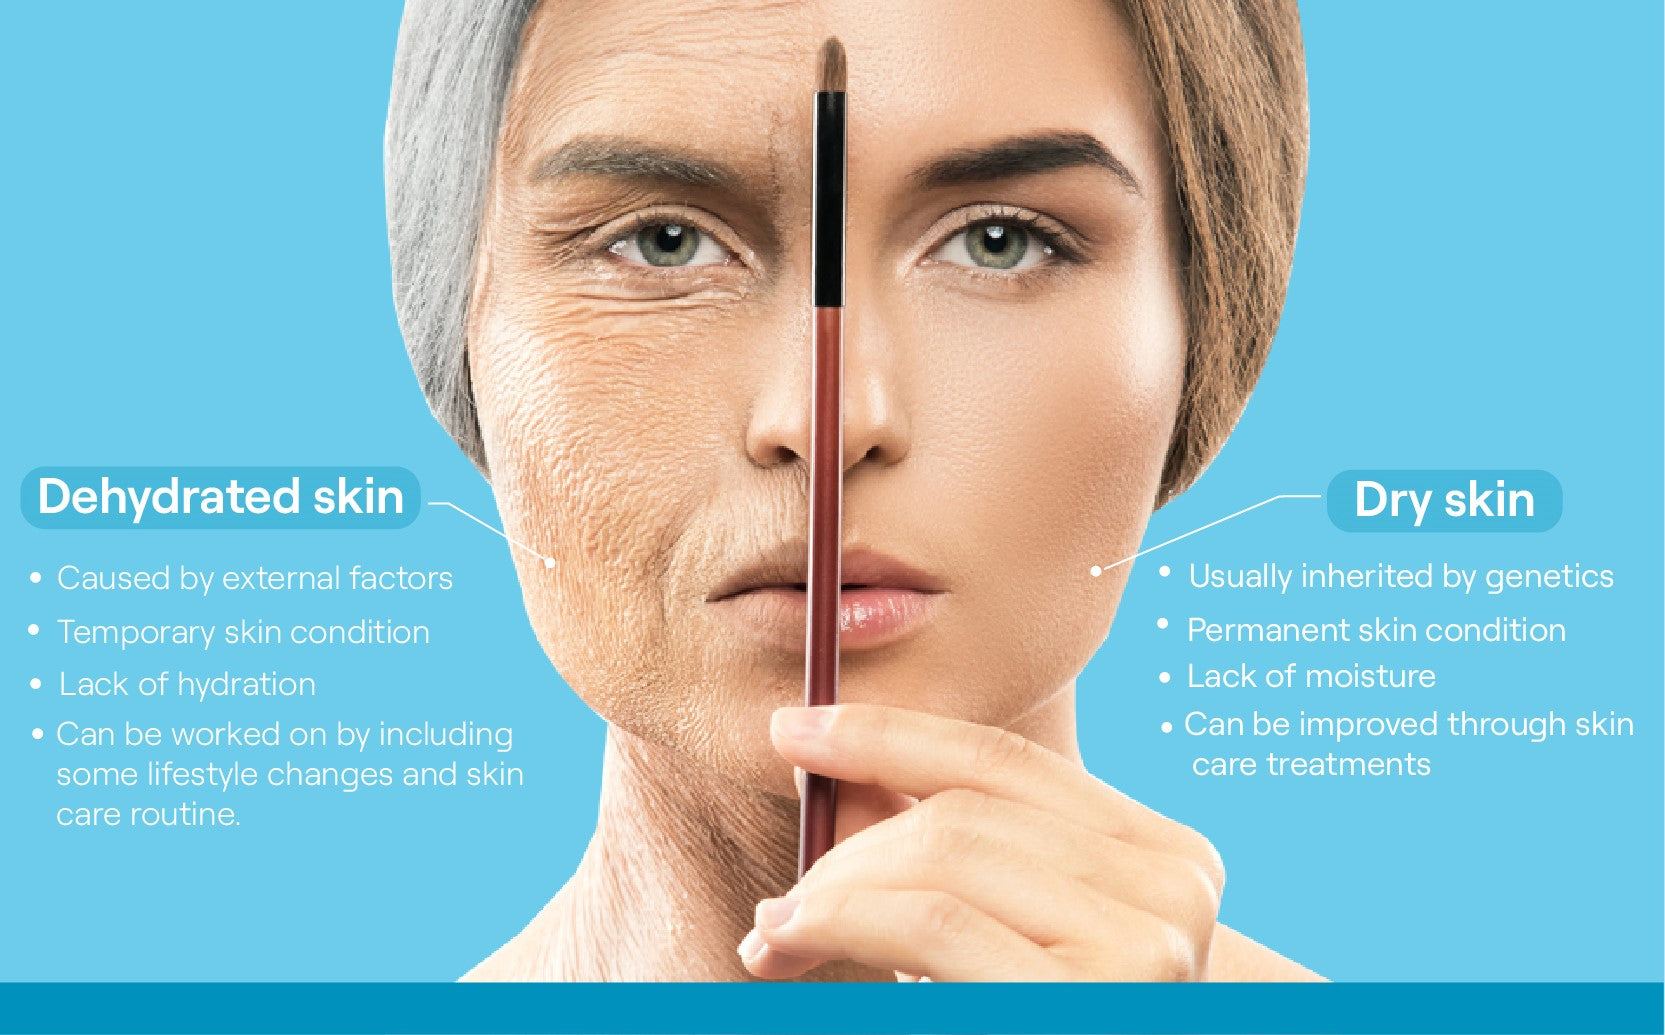 difference between dehydrated and dry skin